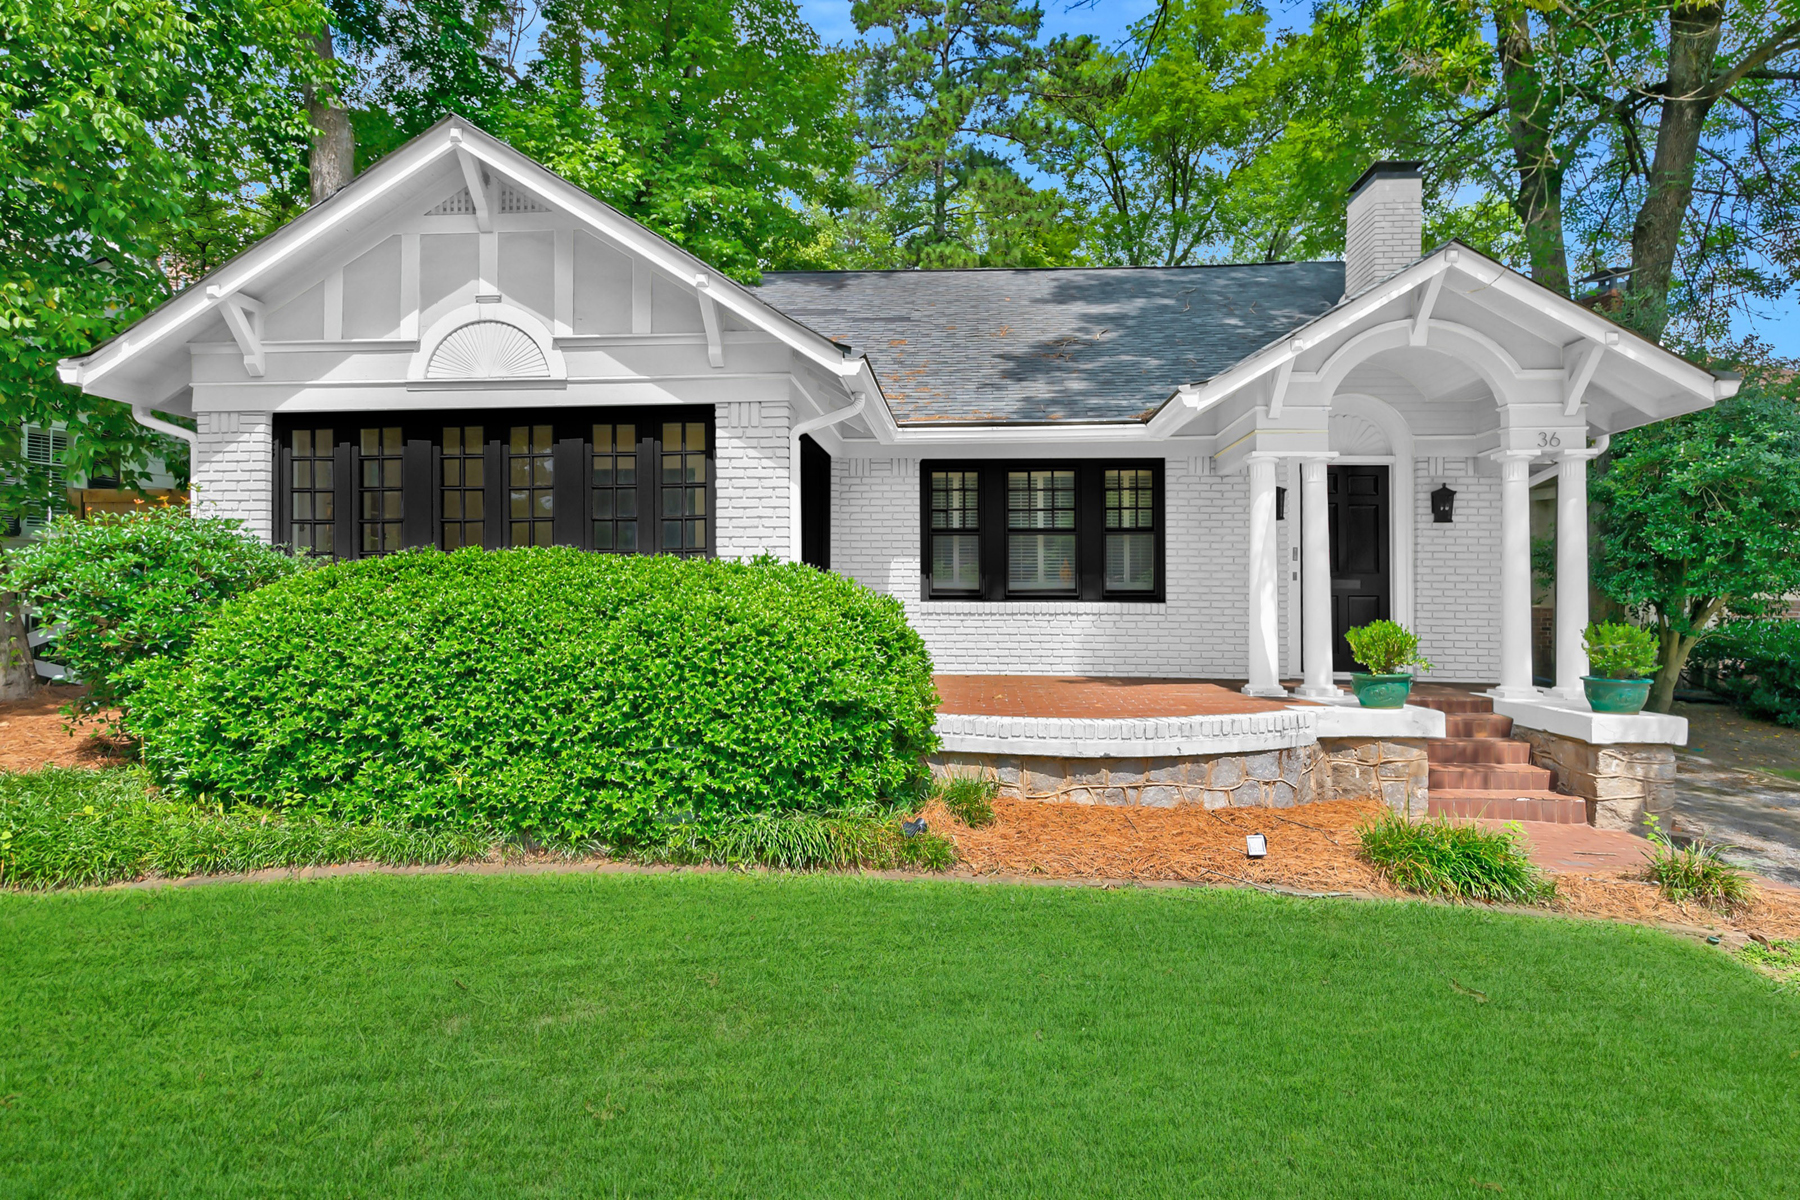 Single Family Homes for Sale at Located Directly Across The Street From Ansley Golf Course 36 Polo Drive Atlanta, Georgia 30309 United States